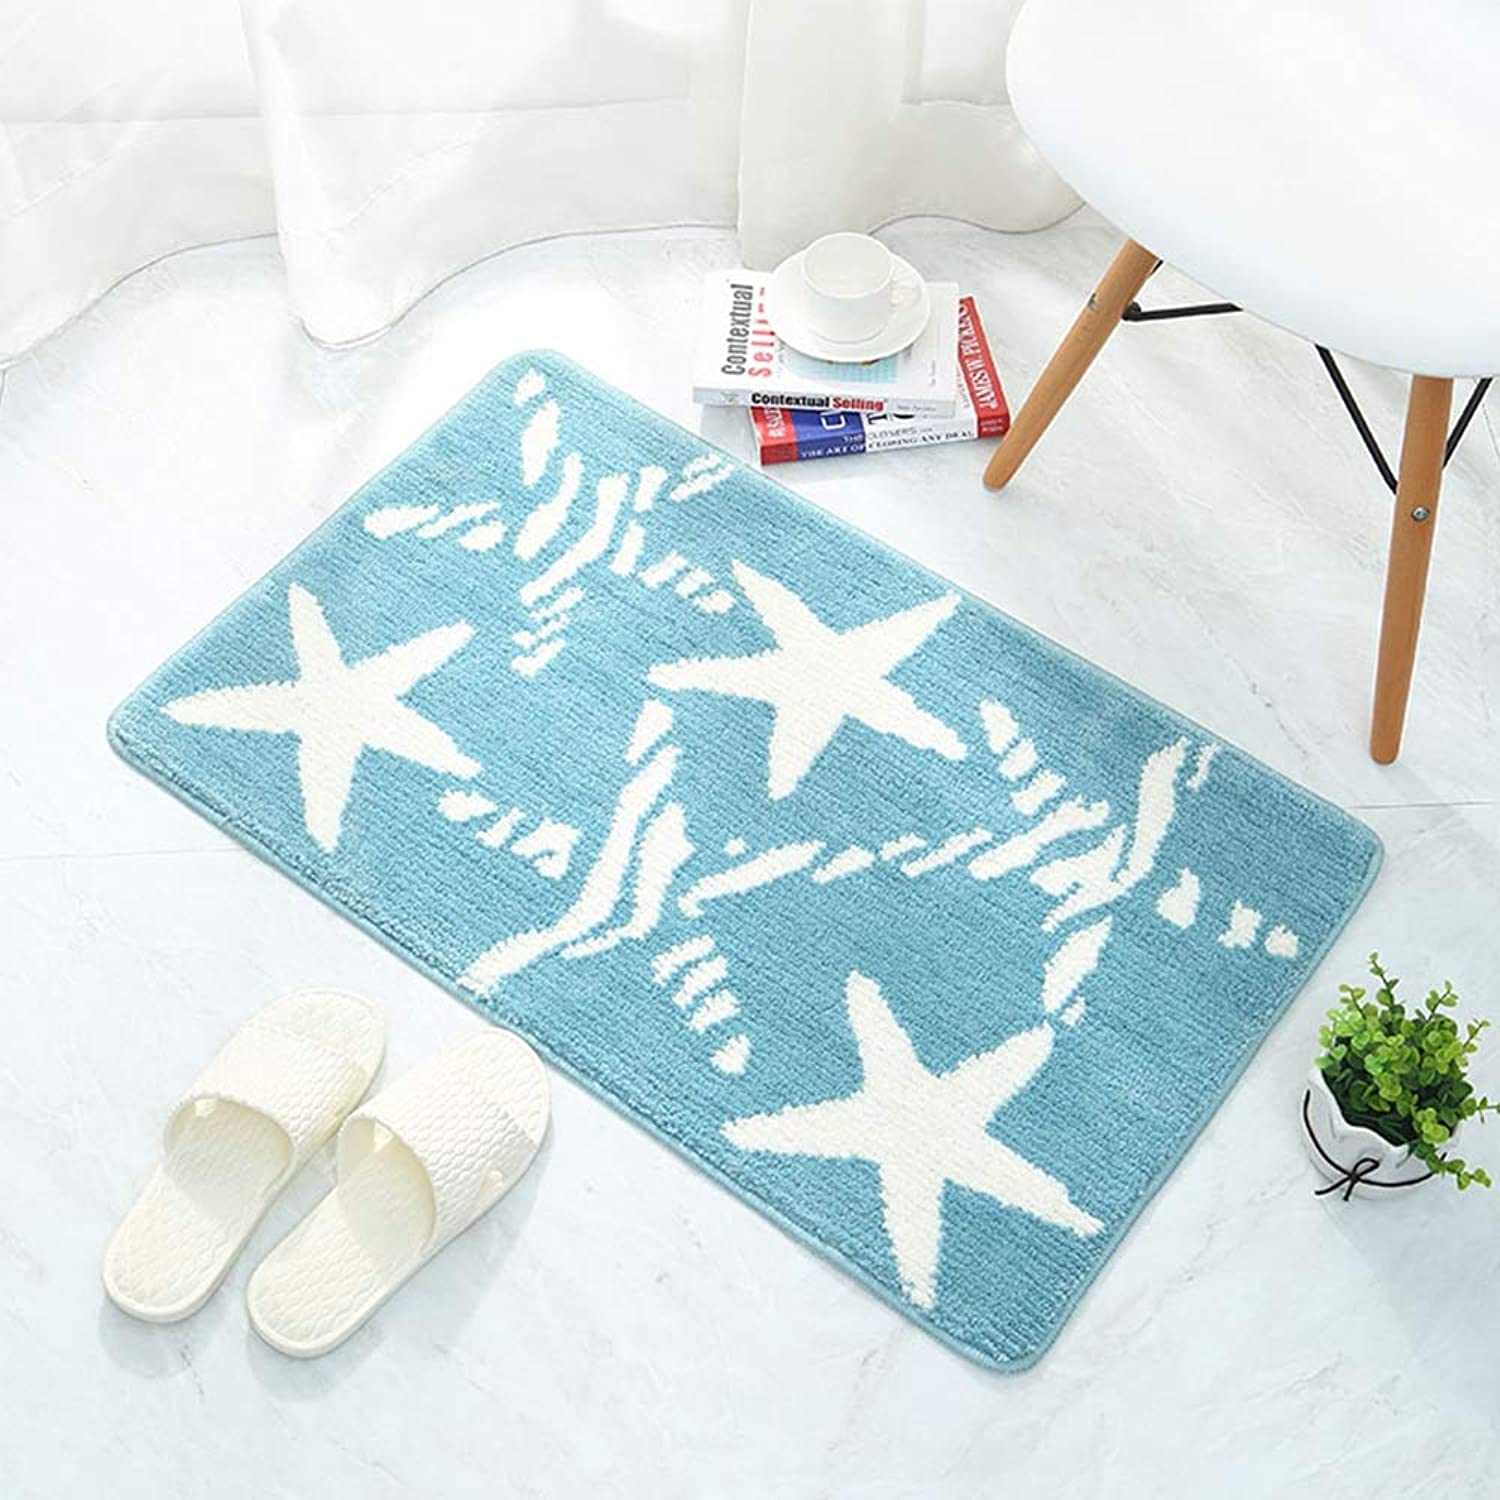 MING REN Floor mat - Polyester fabric, soft and comfortable, absorbent and non-slip, environmentally friendly, stylish cartoon bathroom mat absorbent non-slip home kitchen bedroom mat - 2 sizes availa